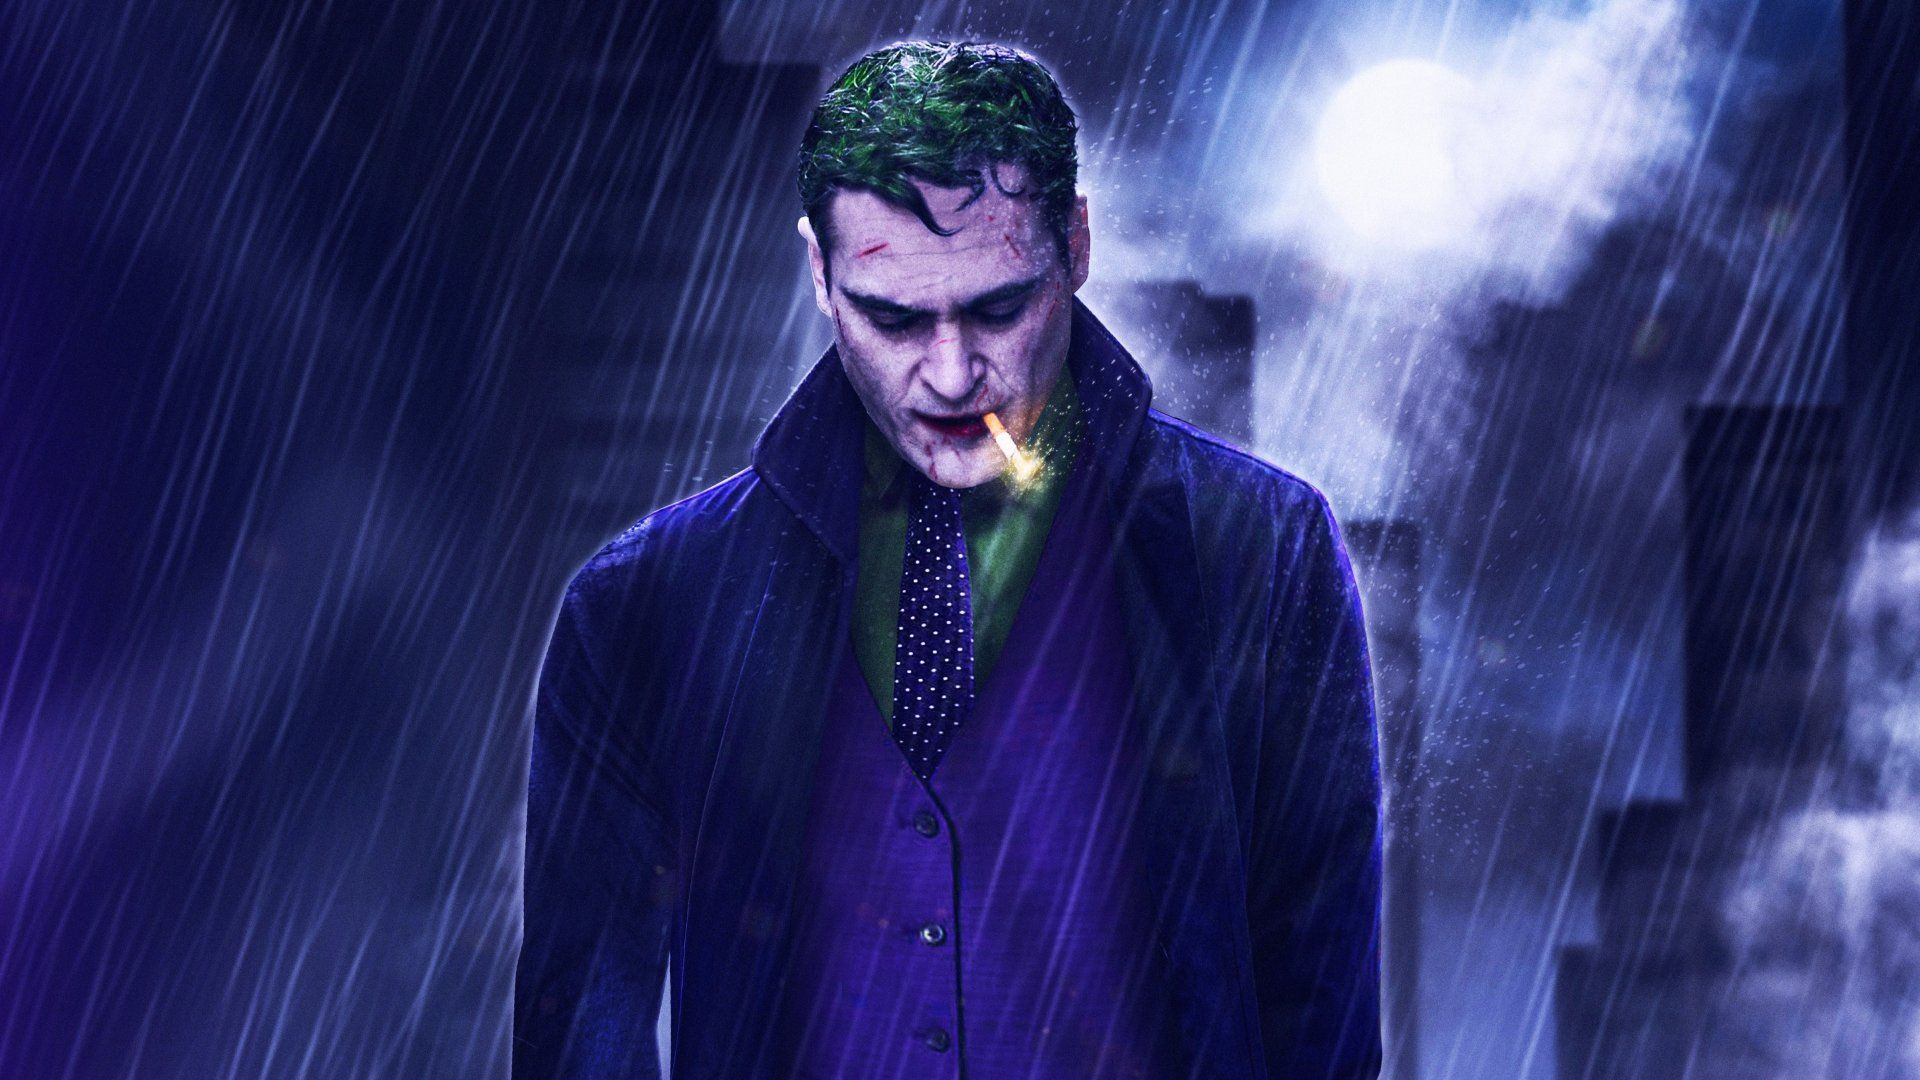 joker hd wallpapers download